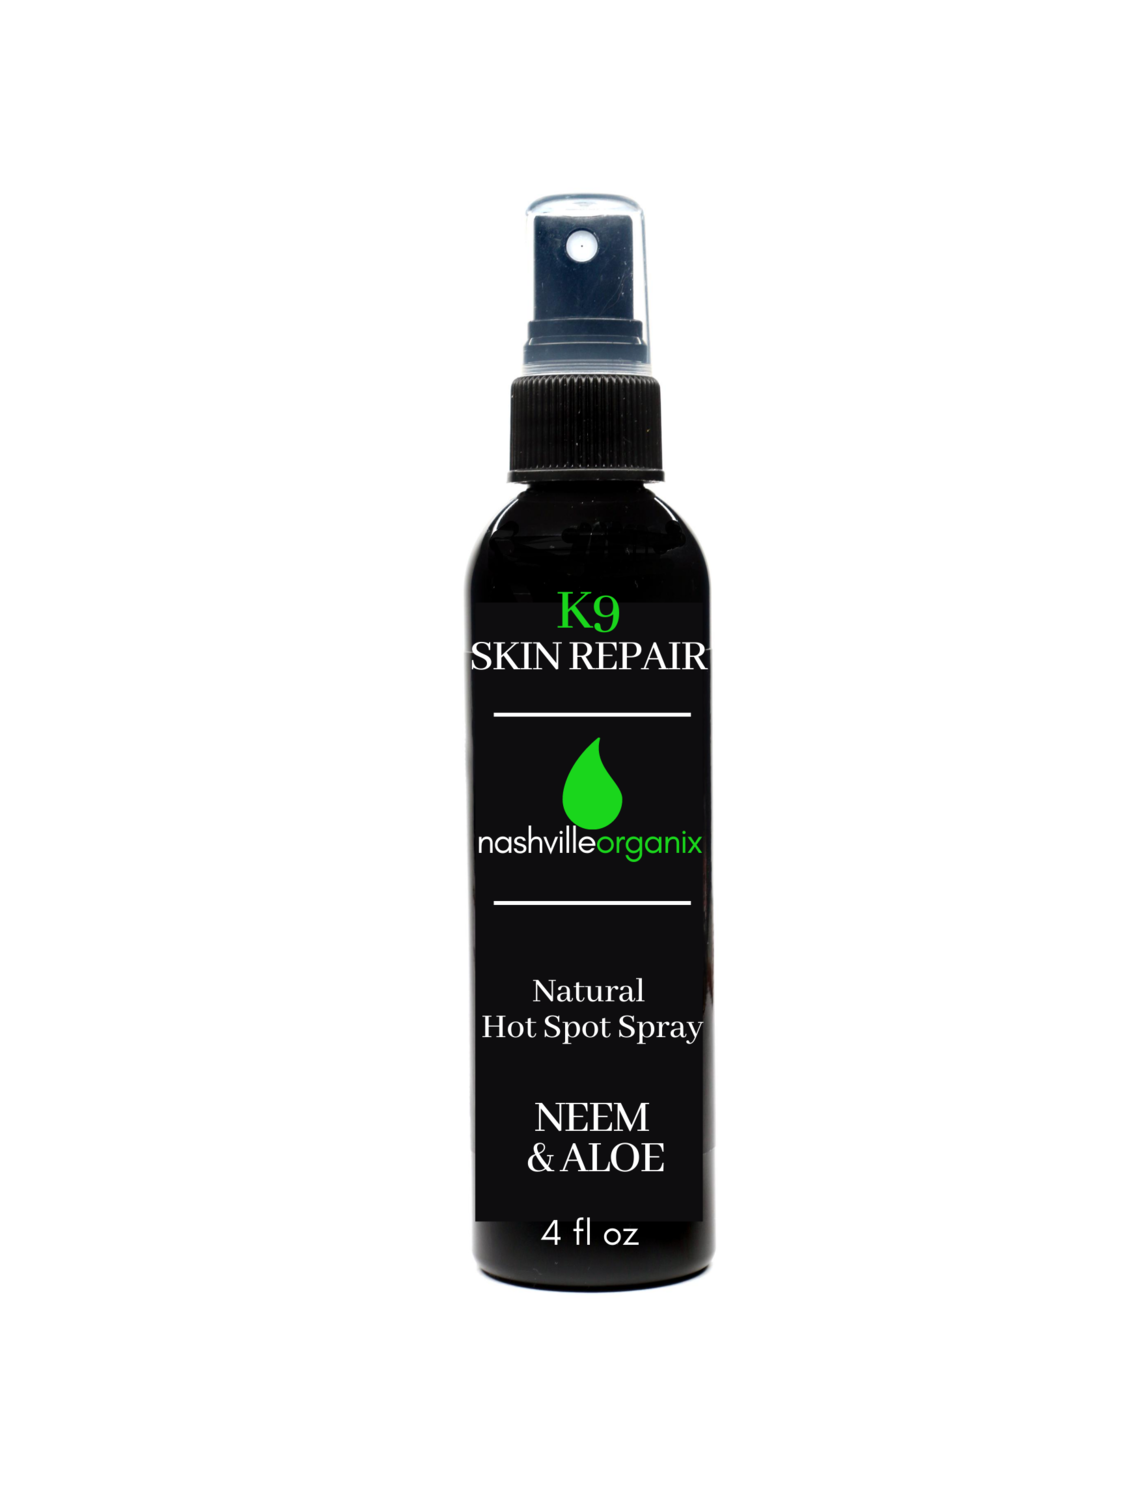 K9 Skin Repair Hot Spot Spray